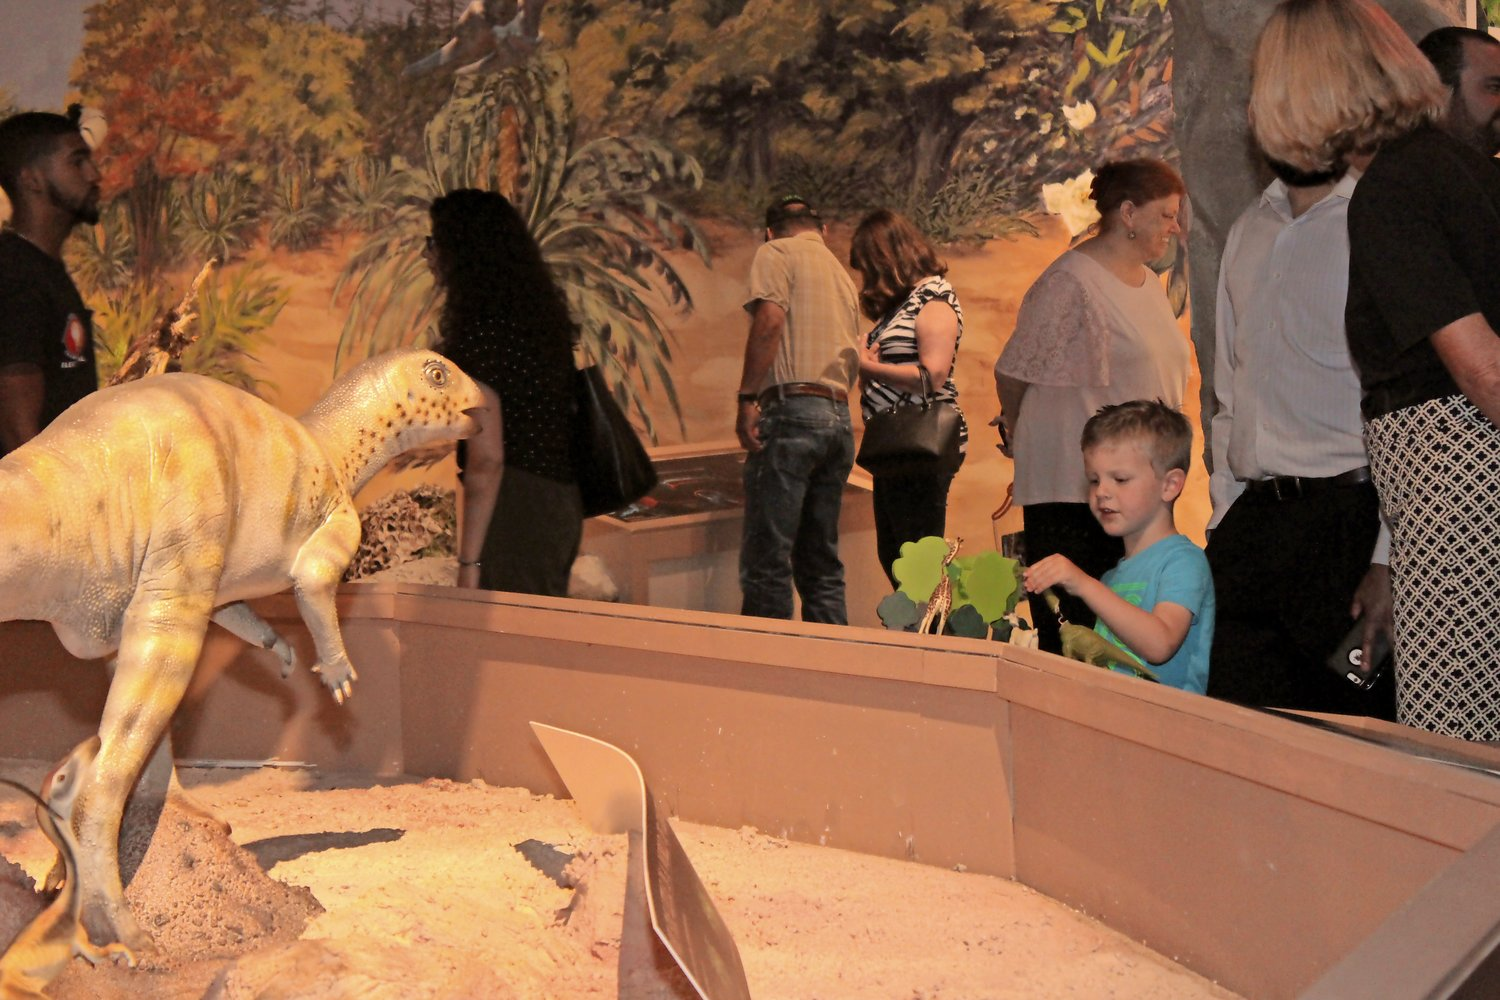 Ziggy Costelloe, 4, of Sea Cliff, far right, interacted with the model dinosaur display.